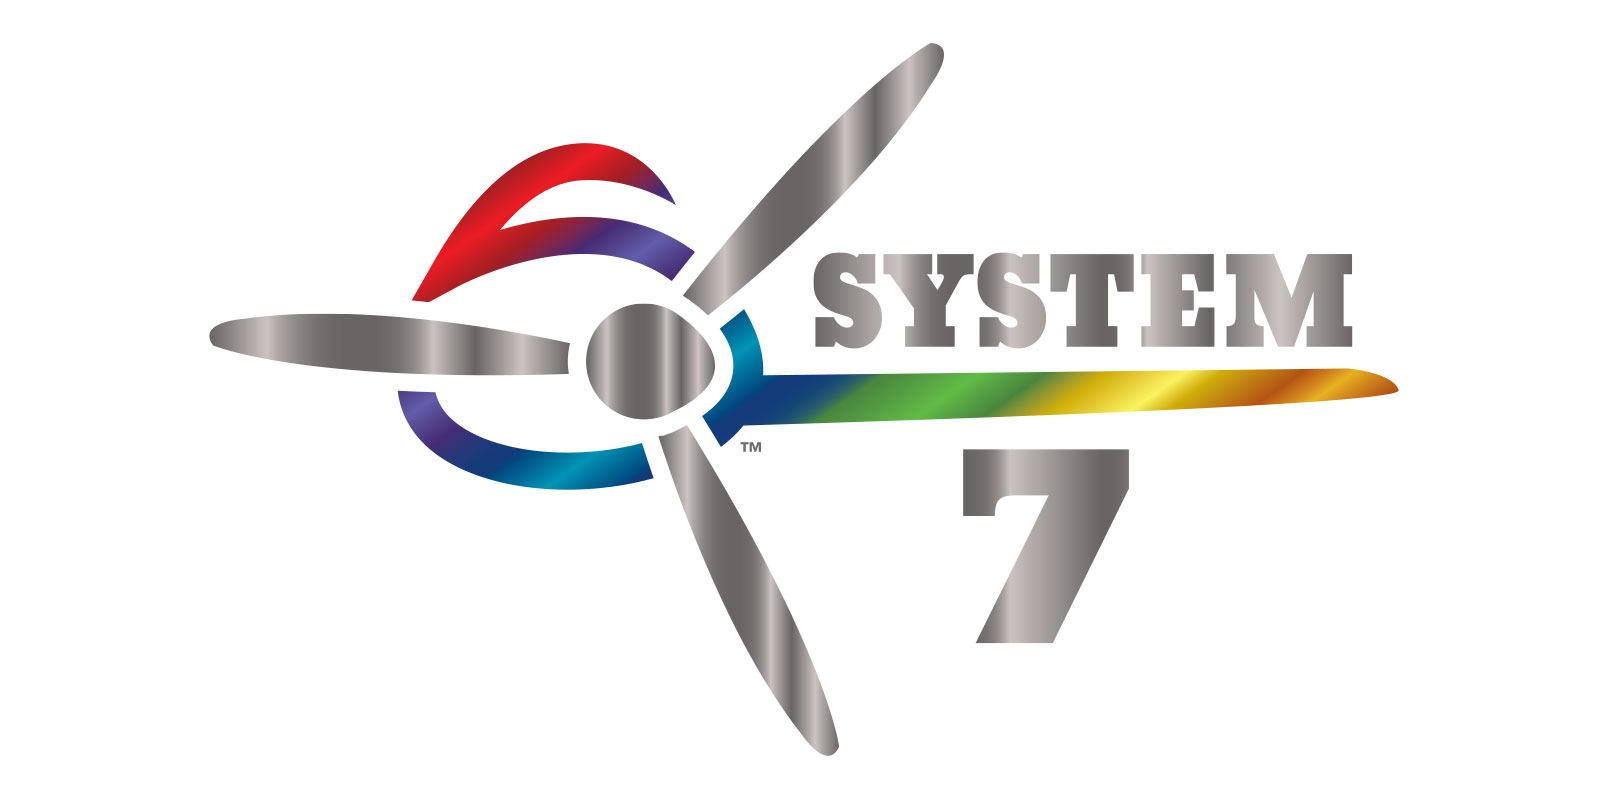 Image of the final full-color logo created for the Superflite System 7 aircraft covering system